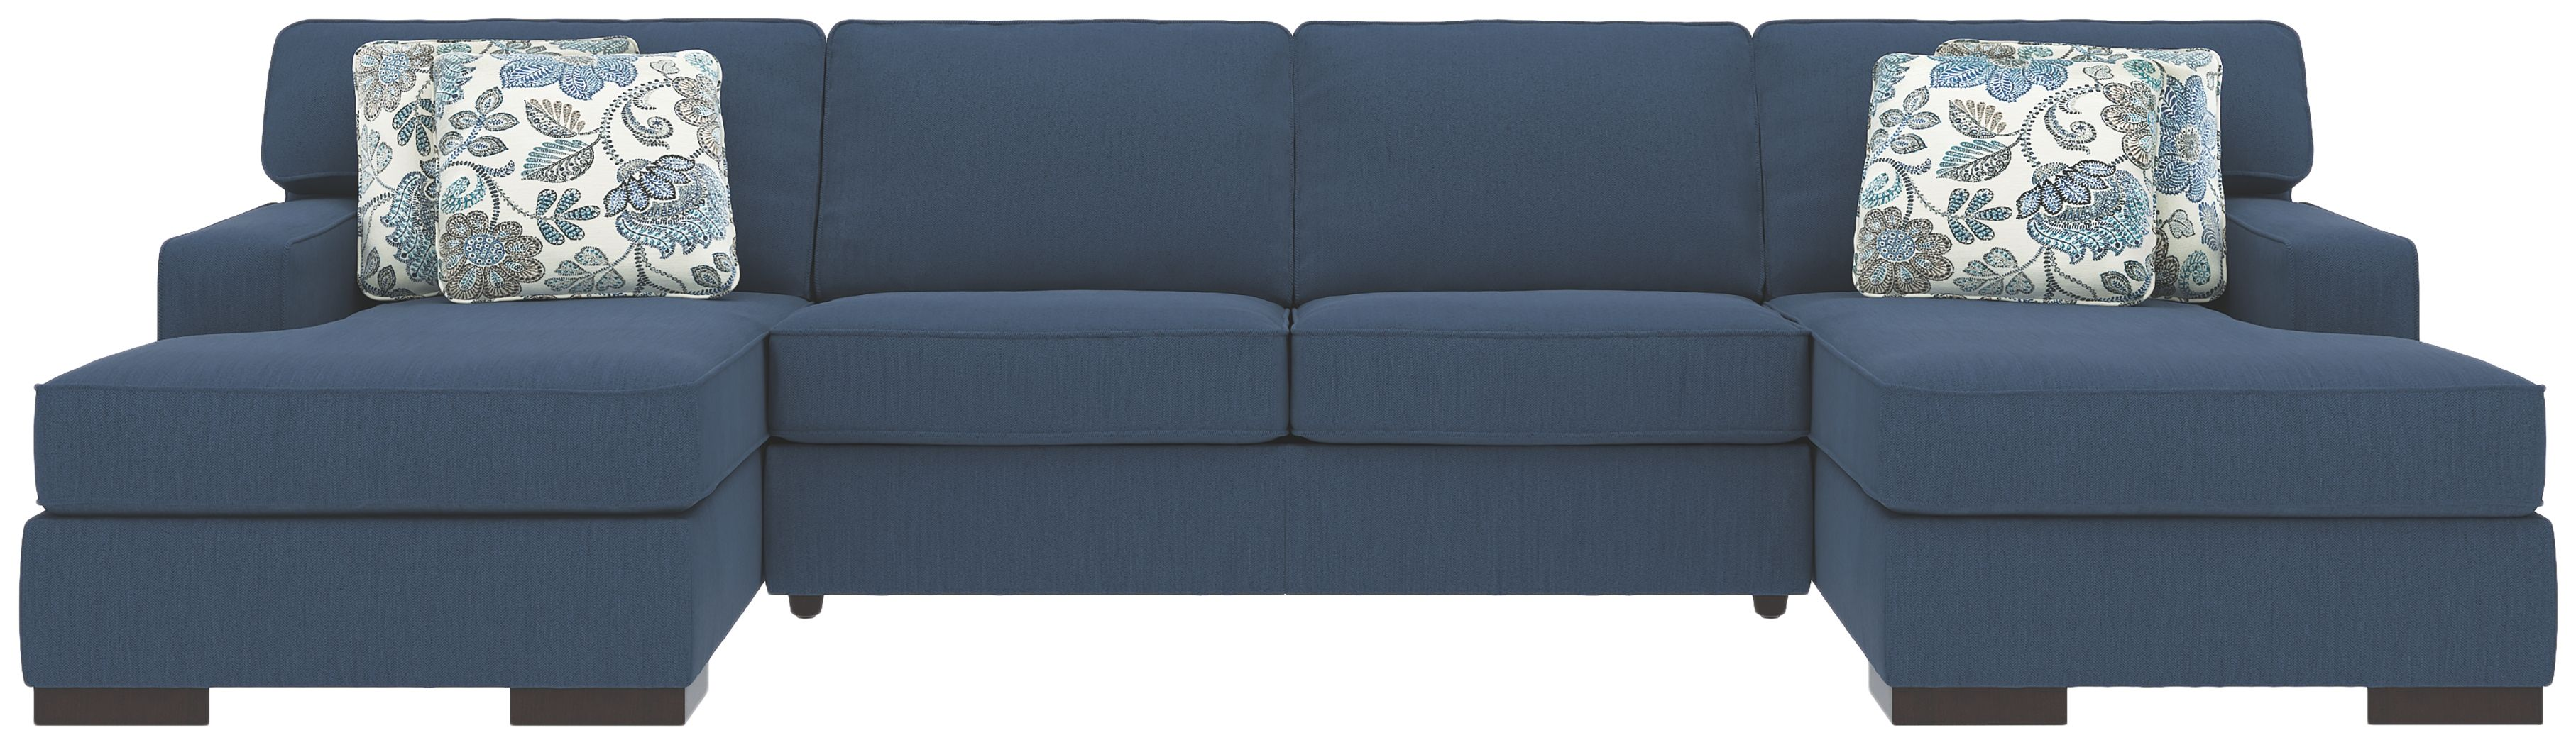 Fabulous Ashlor Nuvella 3 Piece Sectional And Pillows Indigo Ocoug Best Dining Table And Chair Ideas Images Ocougorg